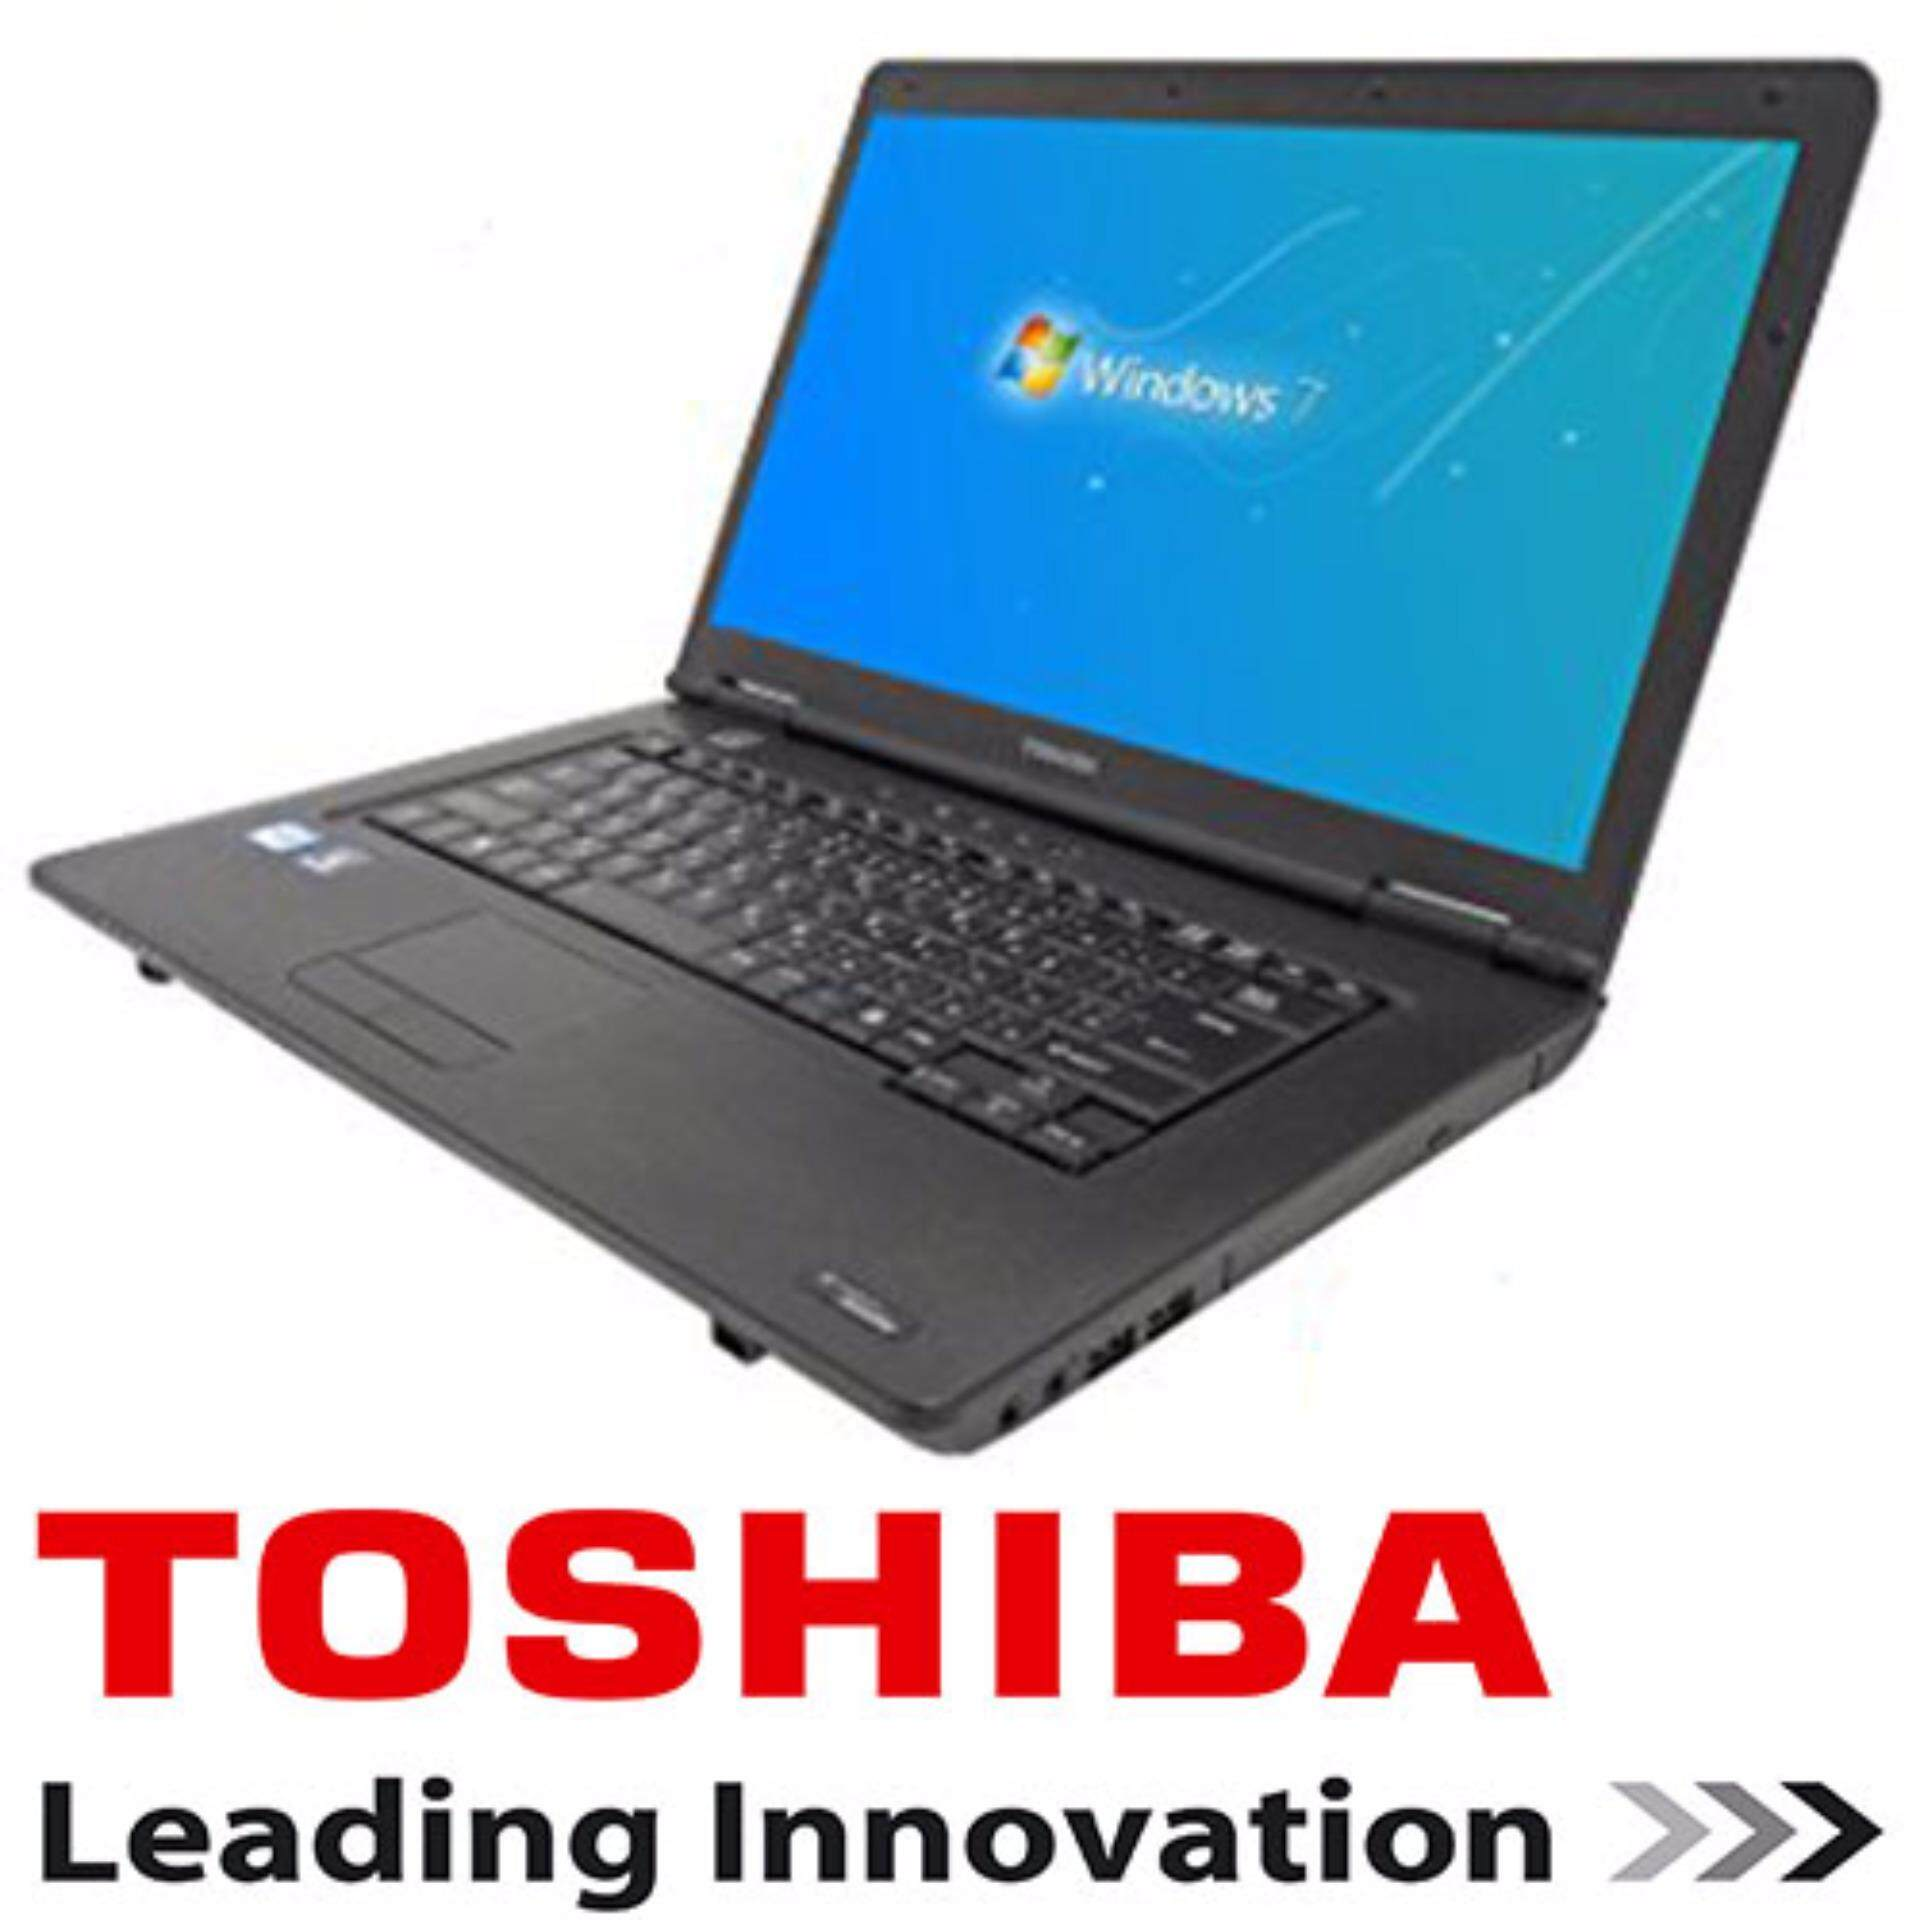 (REFURBISHED) Toshiba satellite Intel core i7 up to 3.40ghz 15.6 4GB RAM 320GB HDD NOTEBOOK LAPTOP Malaysia